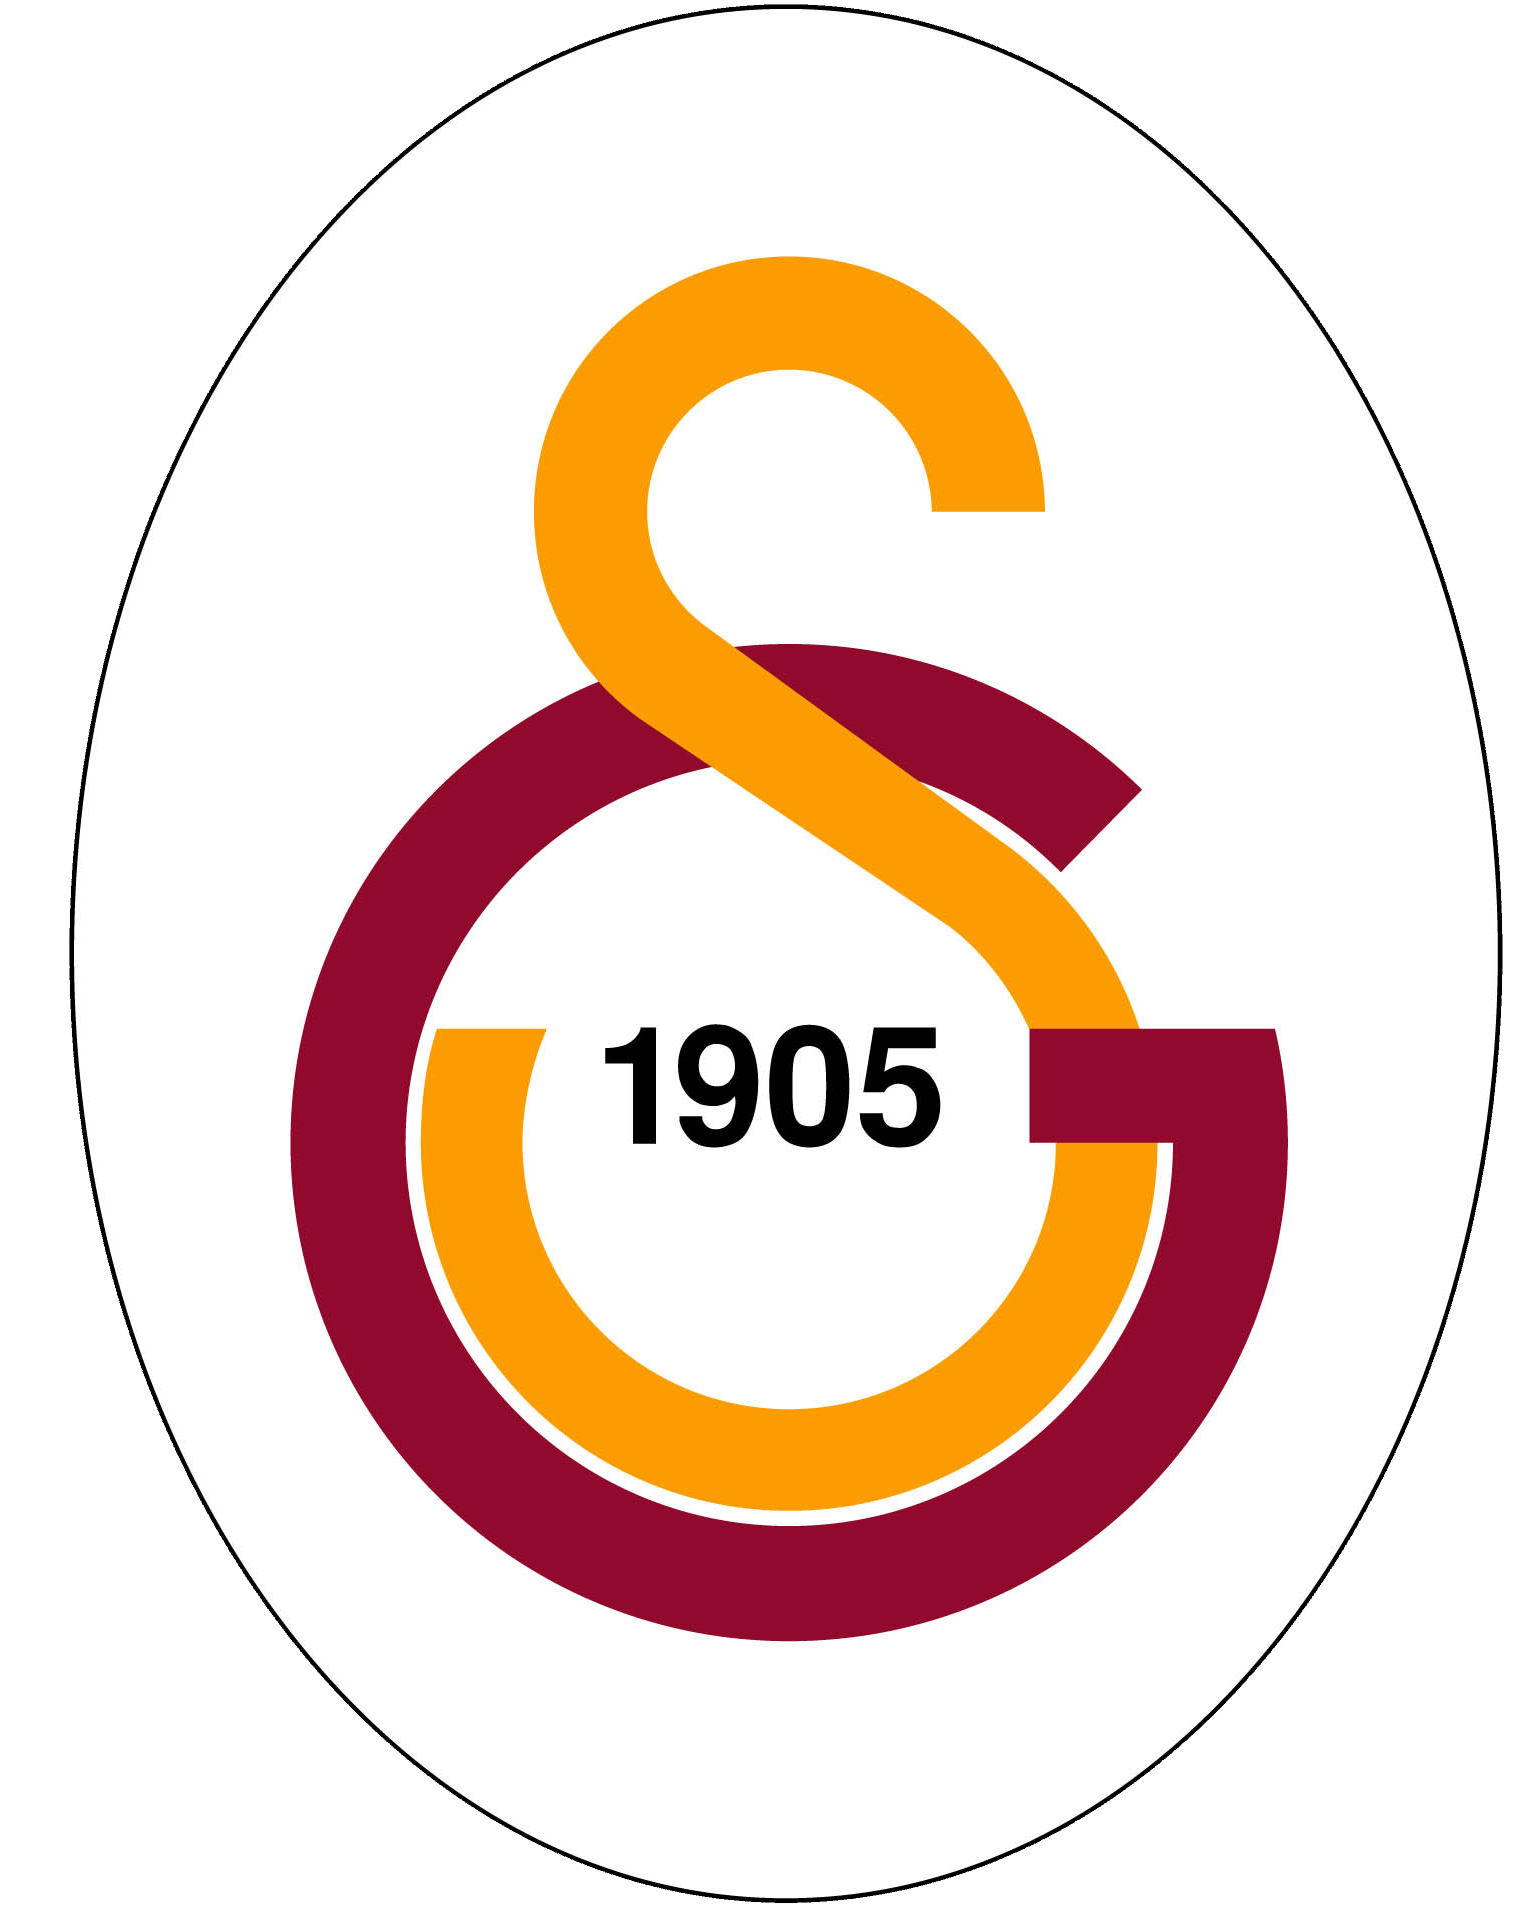 Gs+Logo Description Galatasaray Sports Club Logo.png